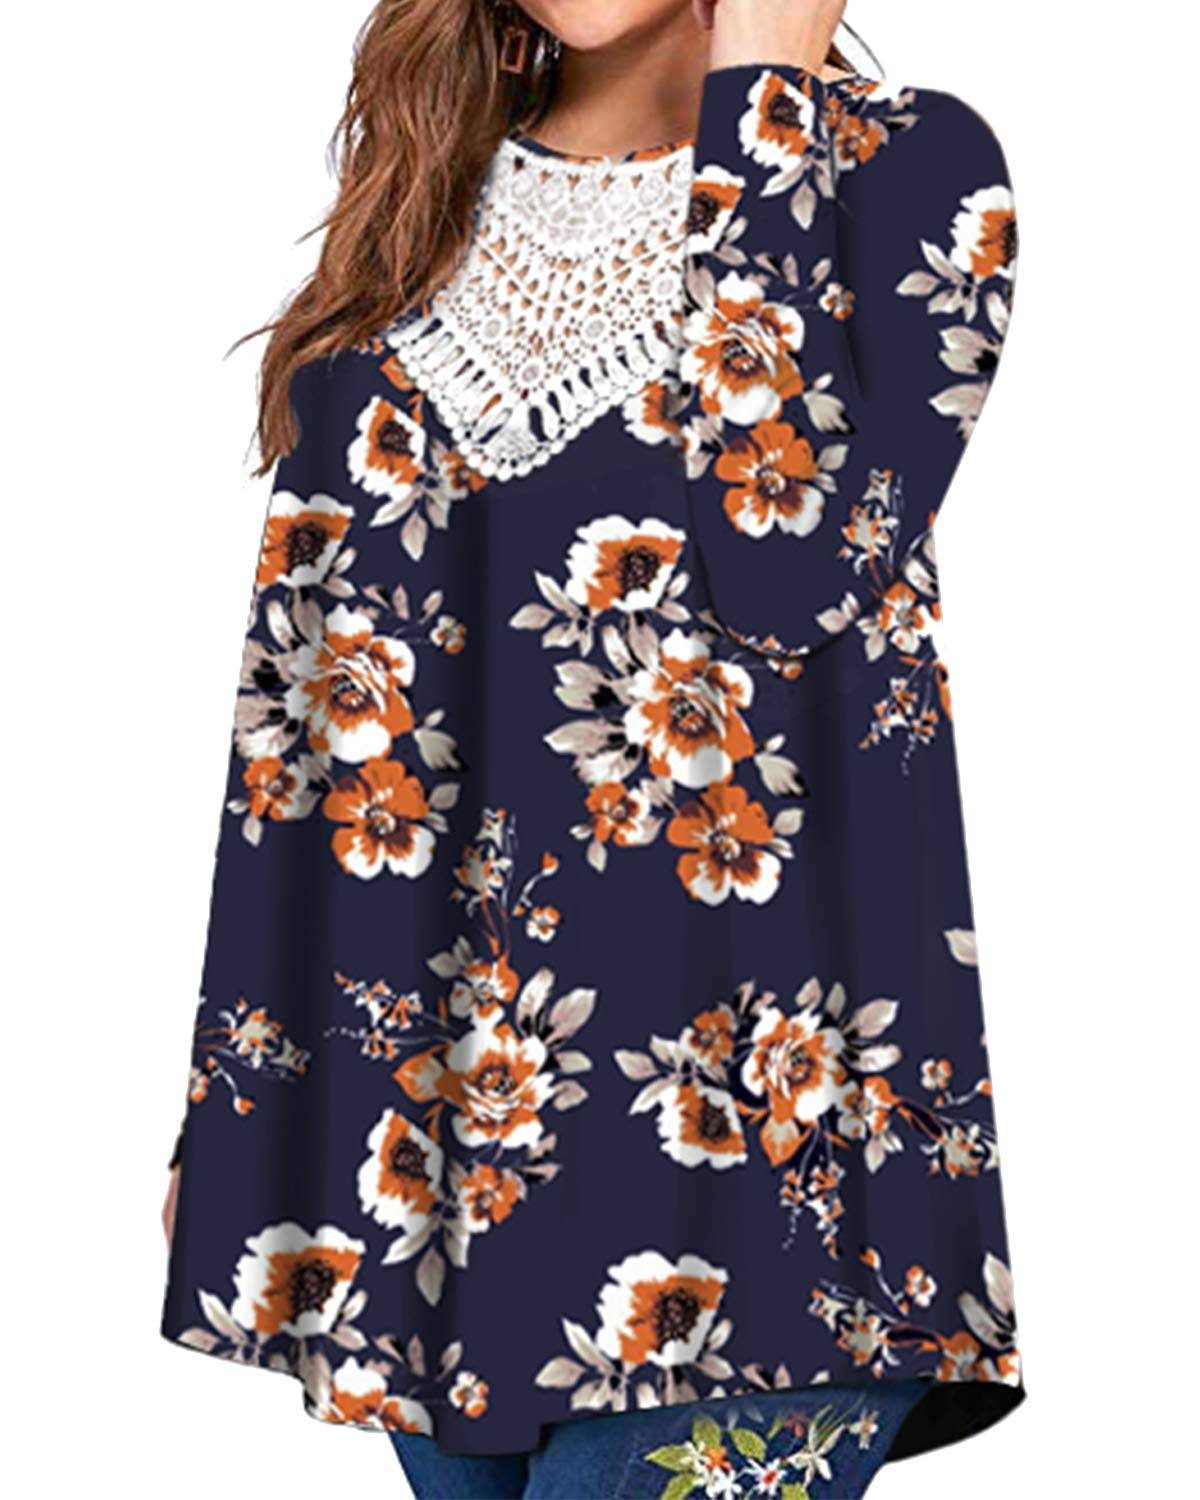 Promaska Lace Shirts for Women Plus Size, Ladies Hollow Out V Neck Long Sleeve Flowy Tops Keyhole Back Floral Print Tunics Swing Fall Clothes Blue 4XL